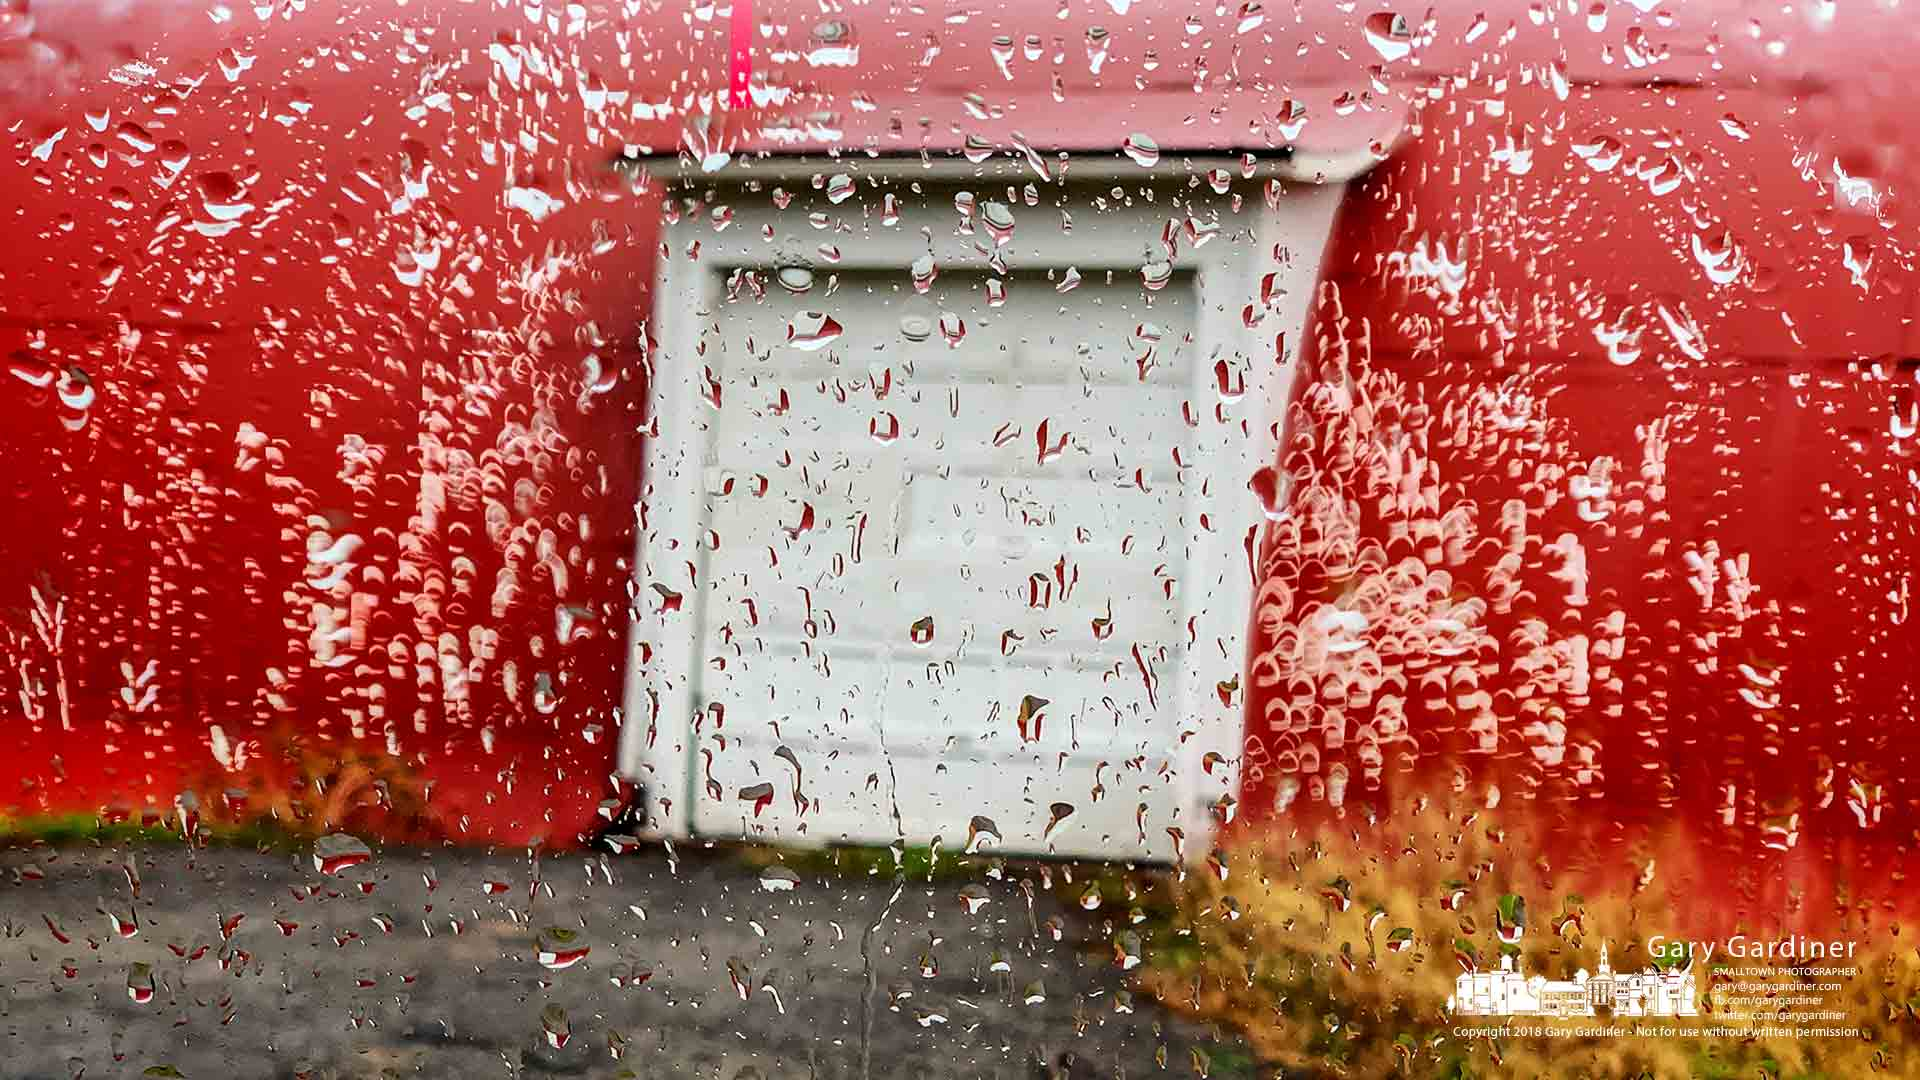 Raindrops roll down a car window parked on a rainy day at the Braun Farm barn in Westerville. My Final Photo for Nov. 19, 2018.